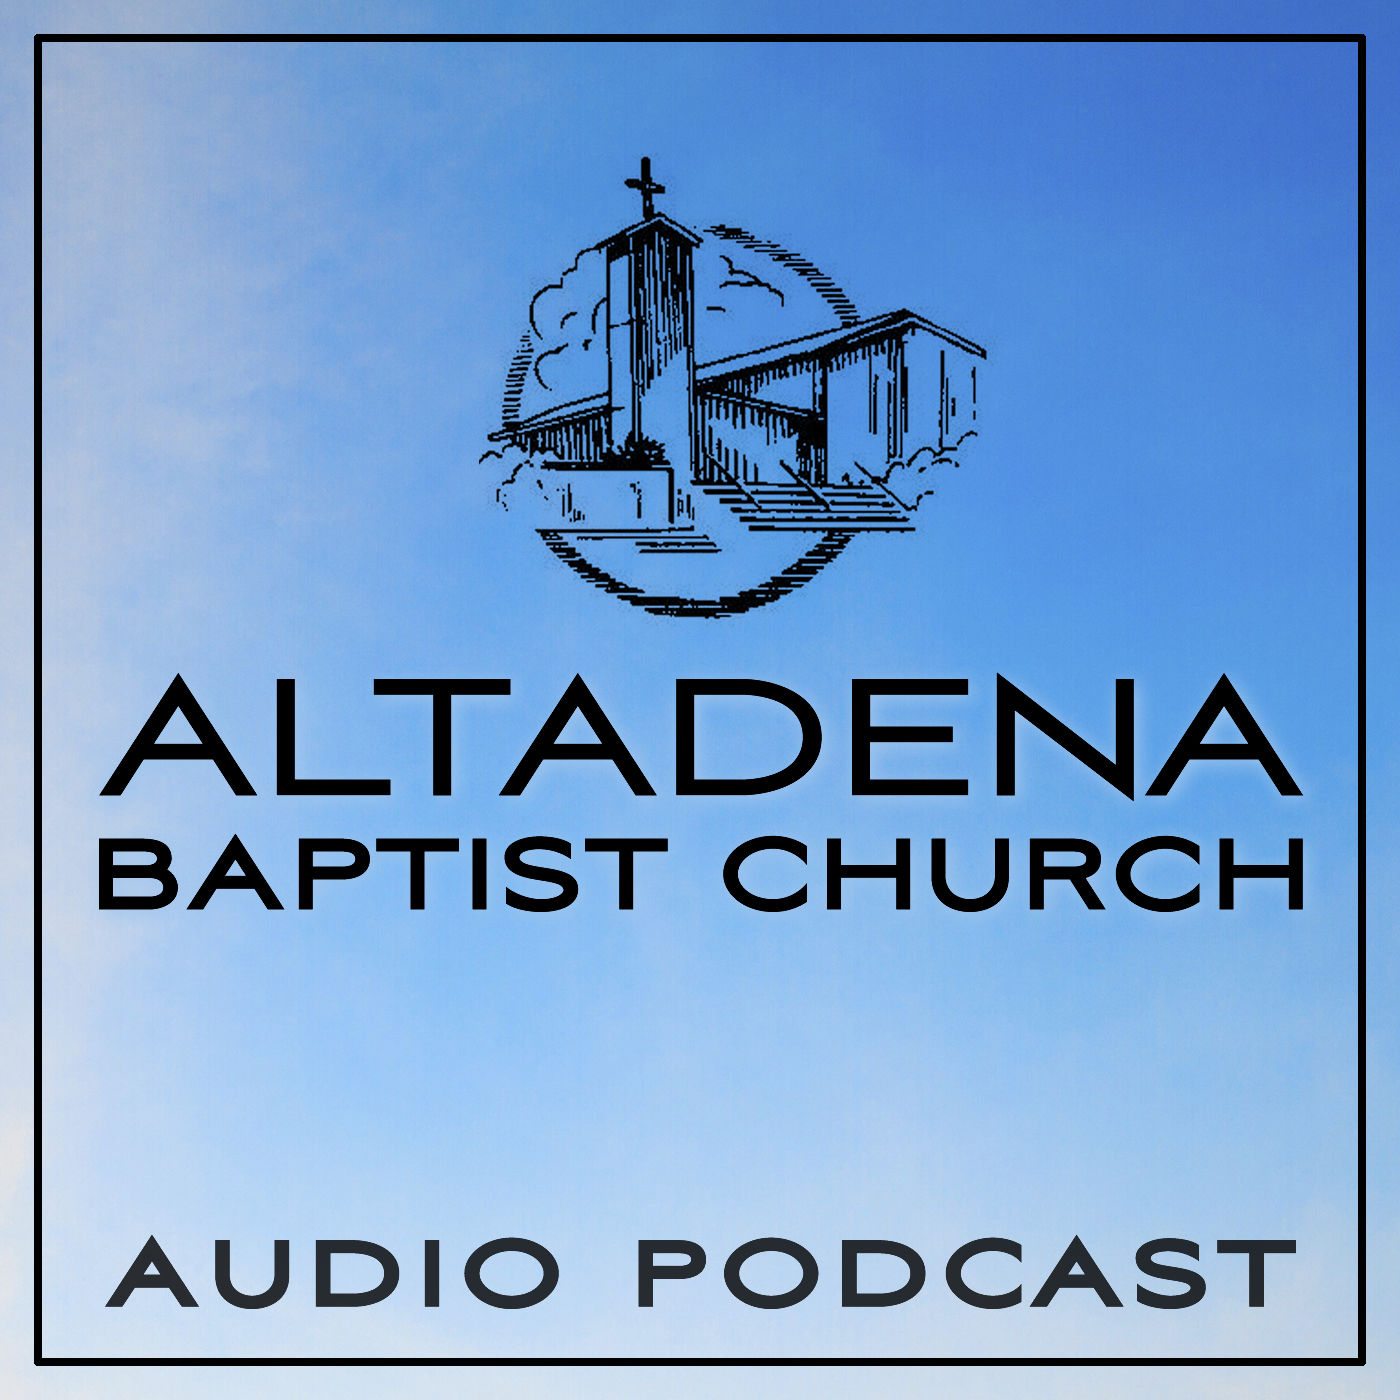 Altadena Baptist Church